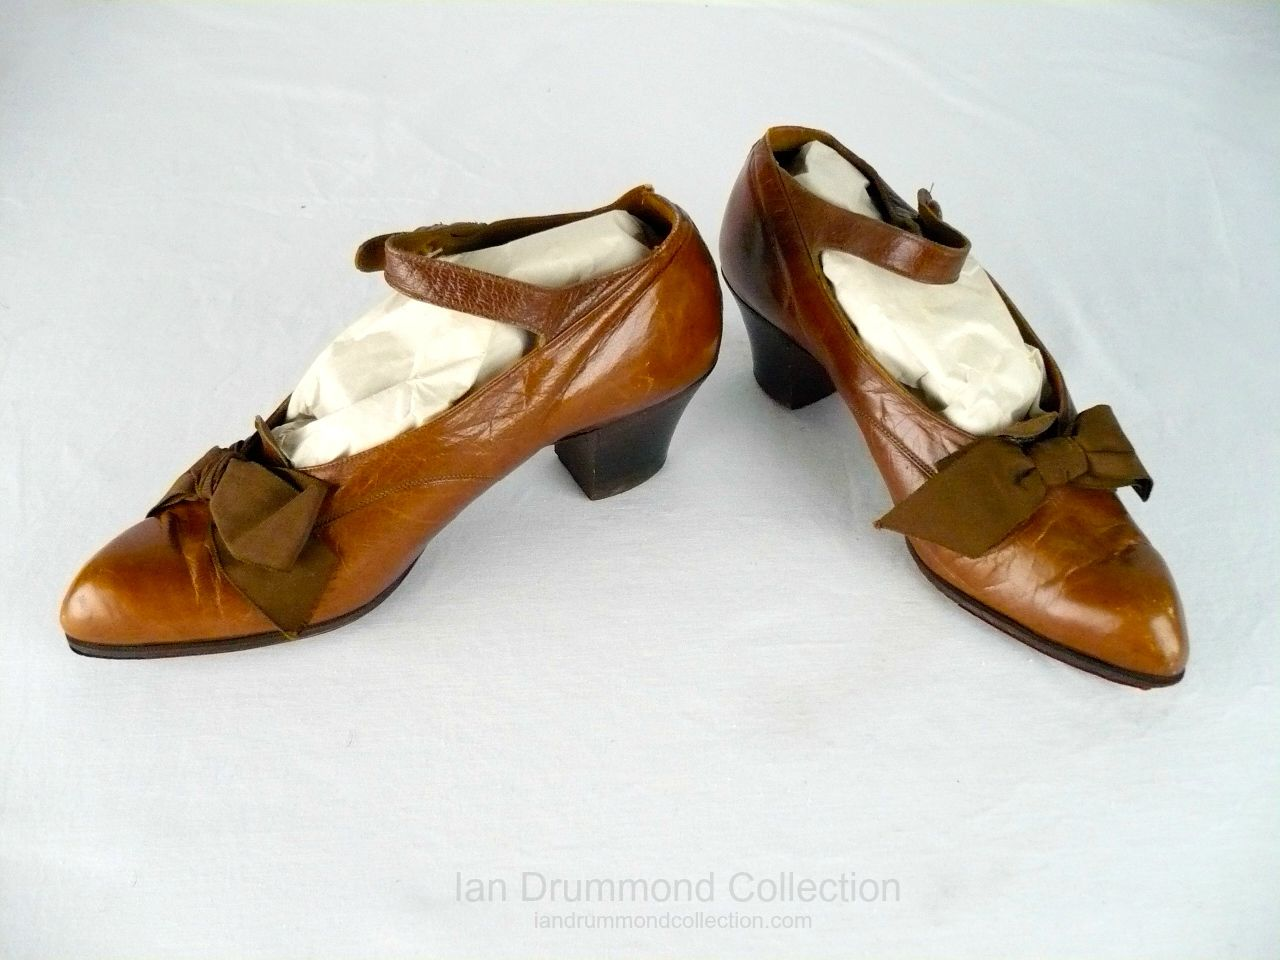 Ian Drummond Colleciton Toronto Vintage Clothing Show 20s Shoes